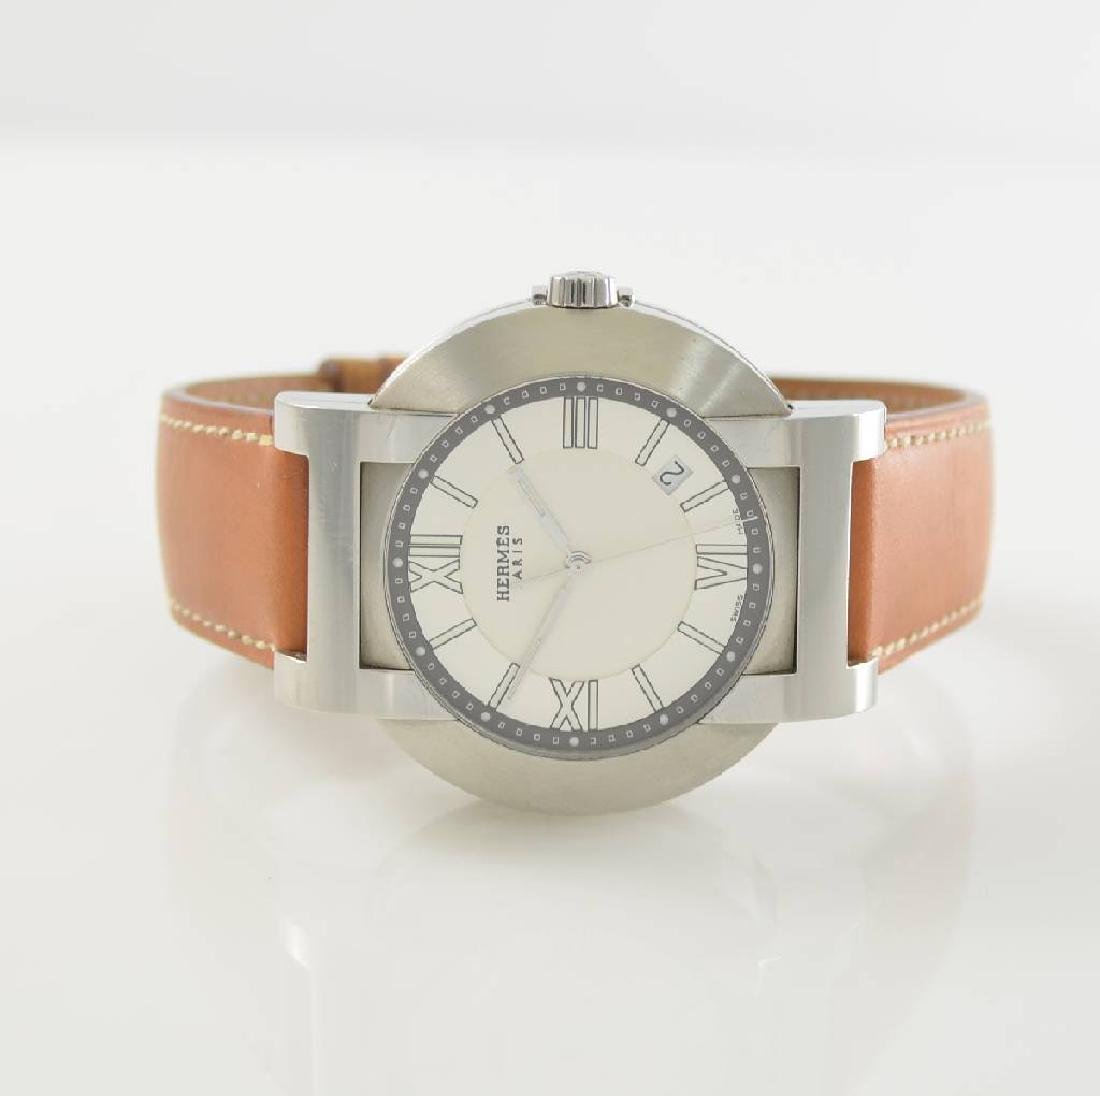 HERMES Nomade-Compass gents wristwatch